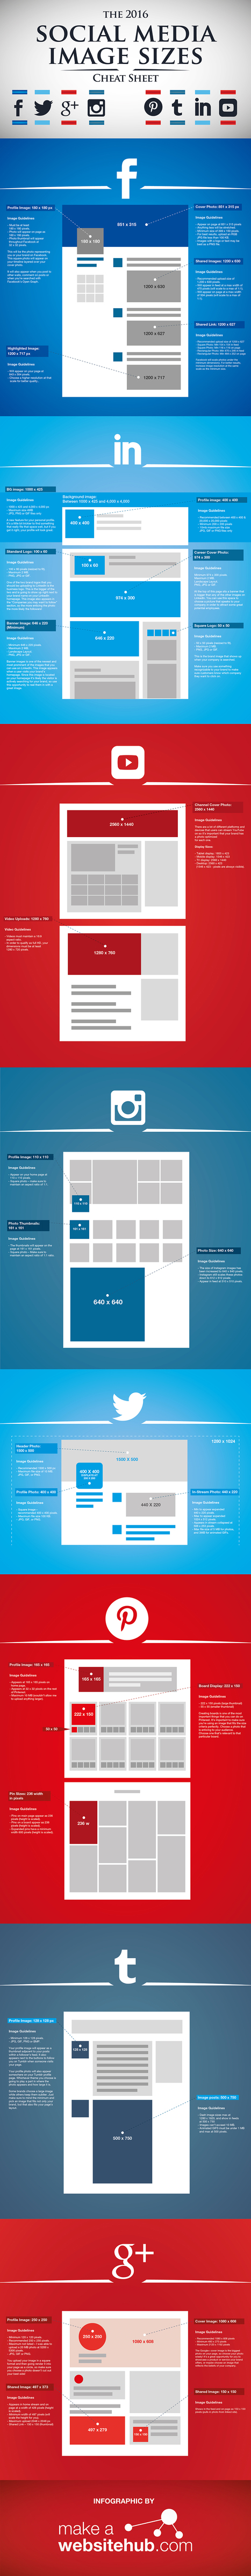 2016 Social Media Image Sizes Cheat Sheet | Infographics | Scoop.it